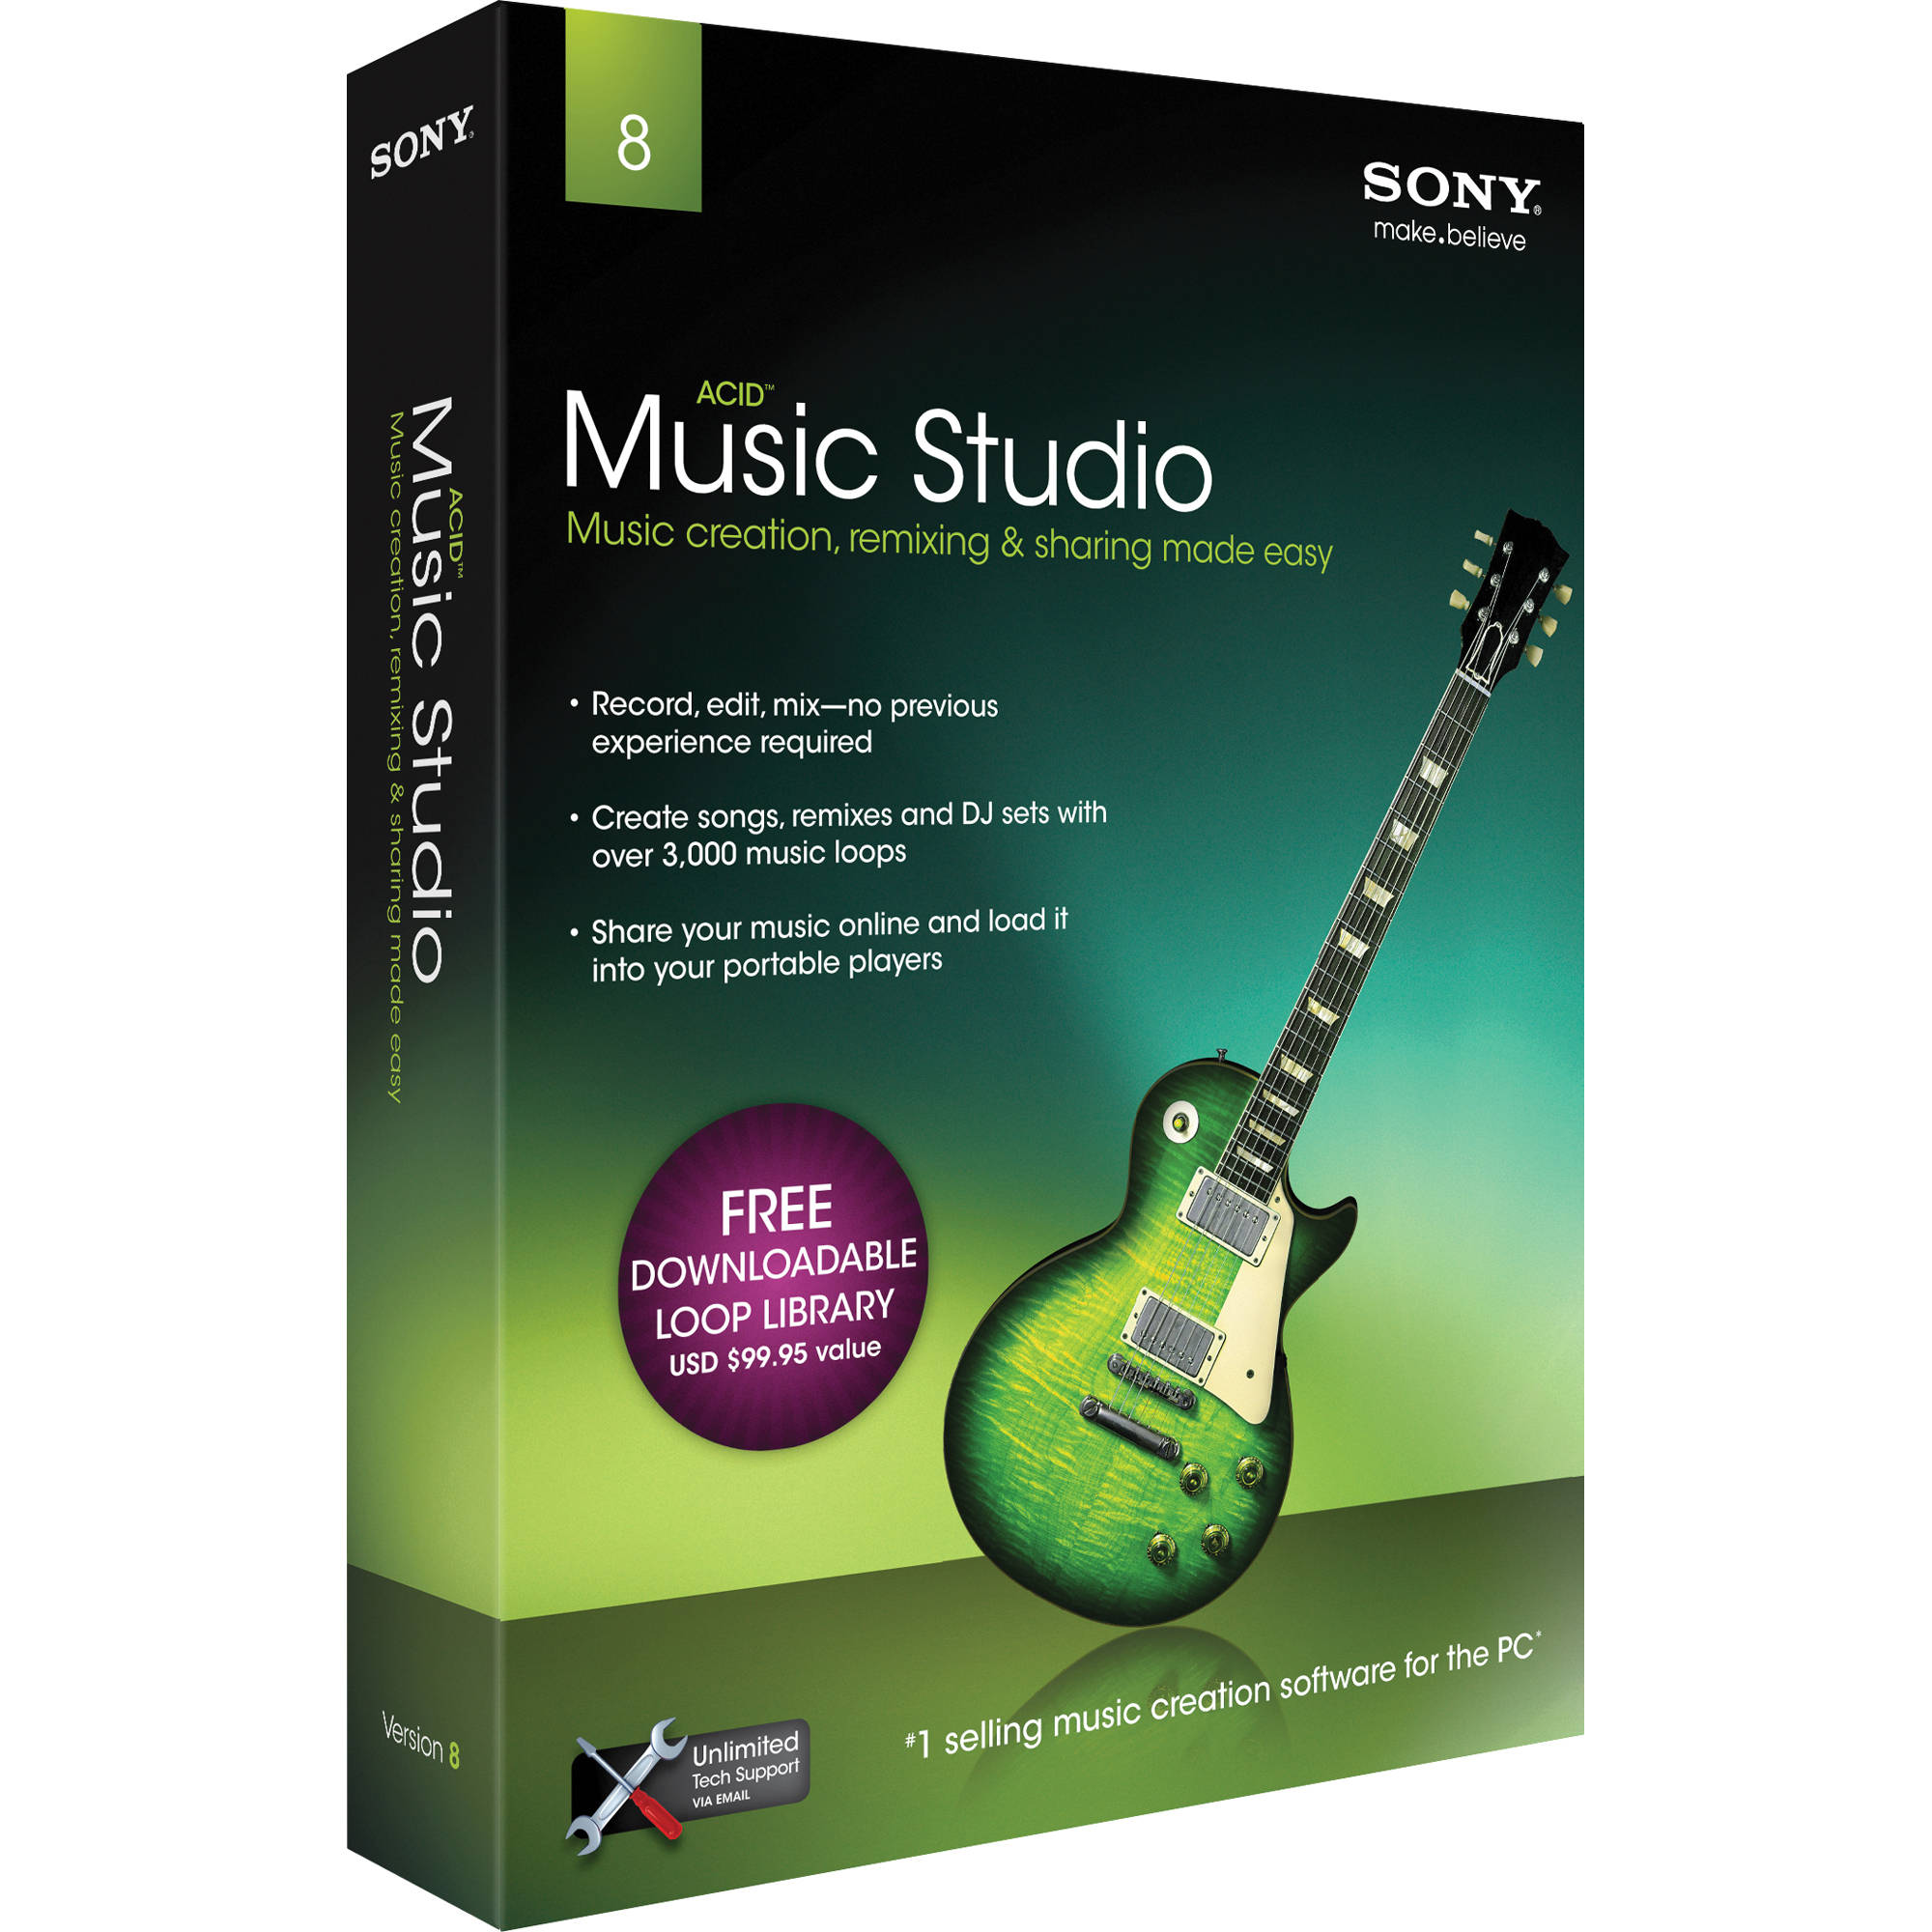 Sony acid music studio 8 complete home recording masamst8000 for Music studio design software